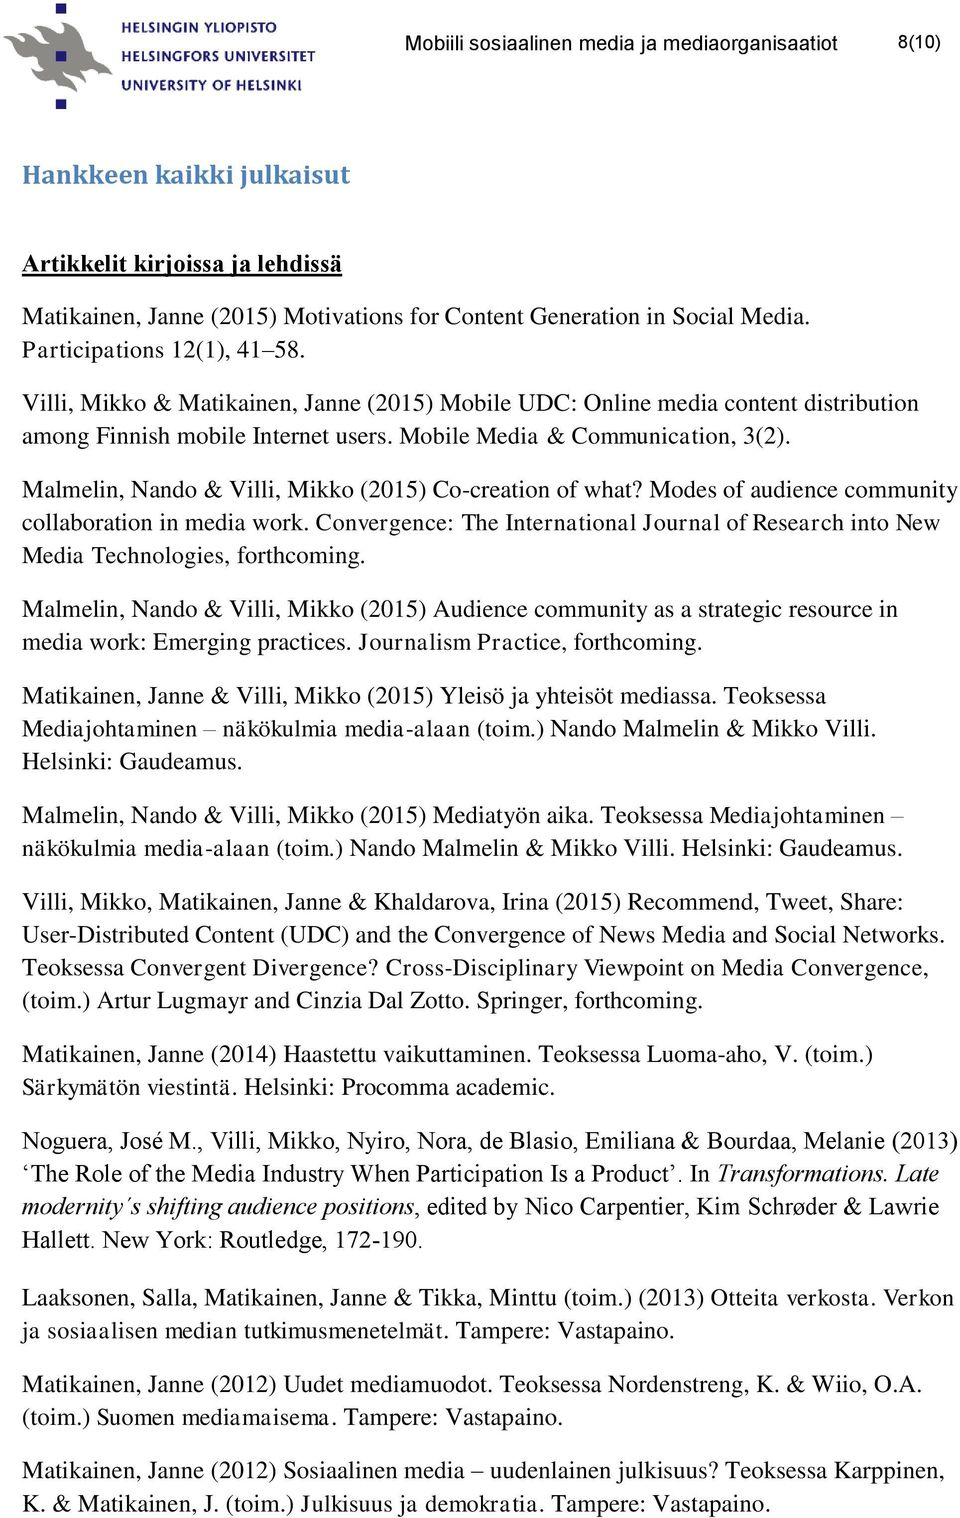 Malmelin, Nando & Villi, Mikko (2015) Co-creation of what? Modes of audience community collaboration in media work.